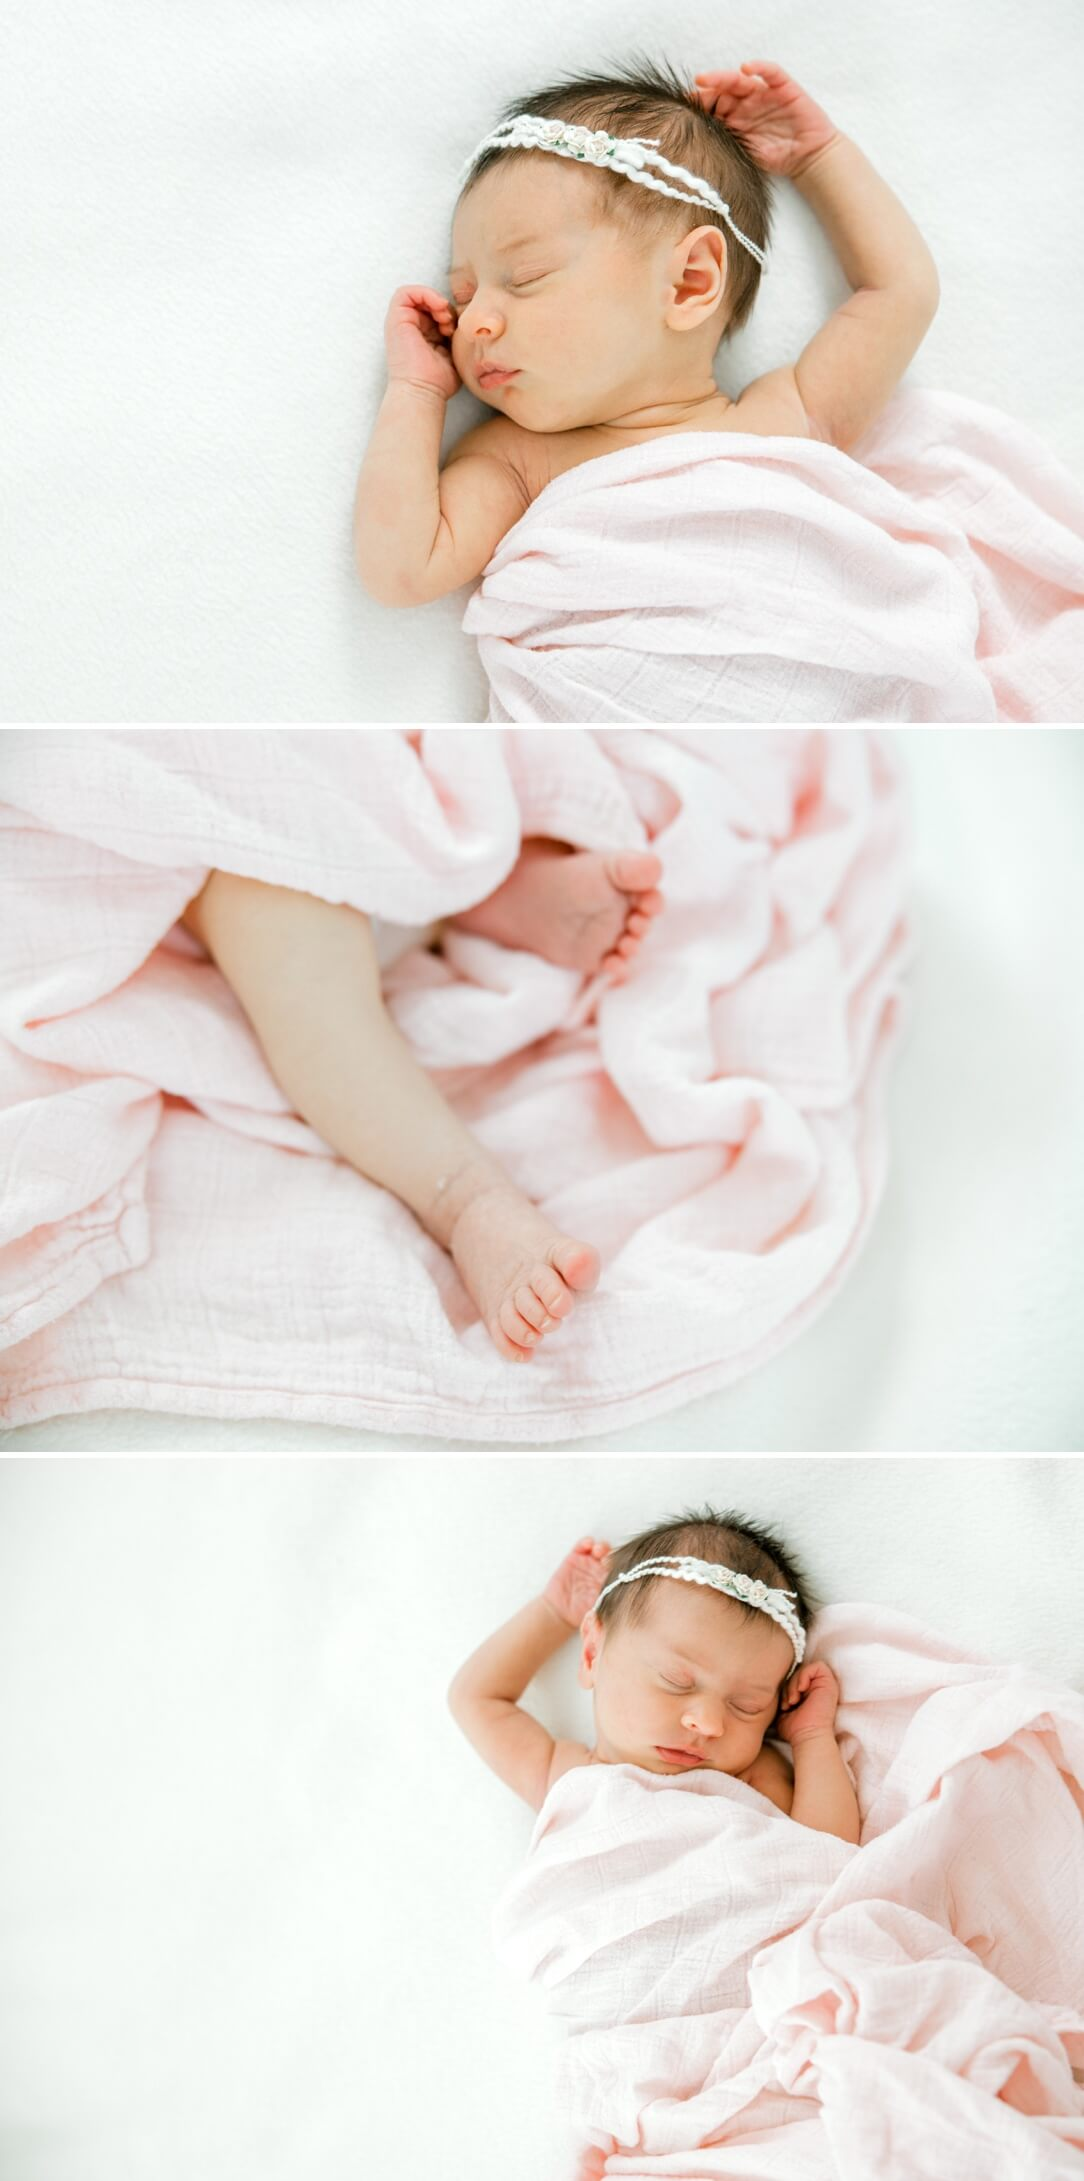 natural and relaxed poses of a newborn baby